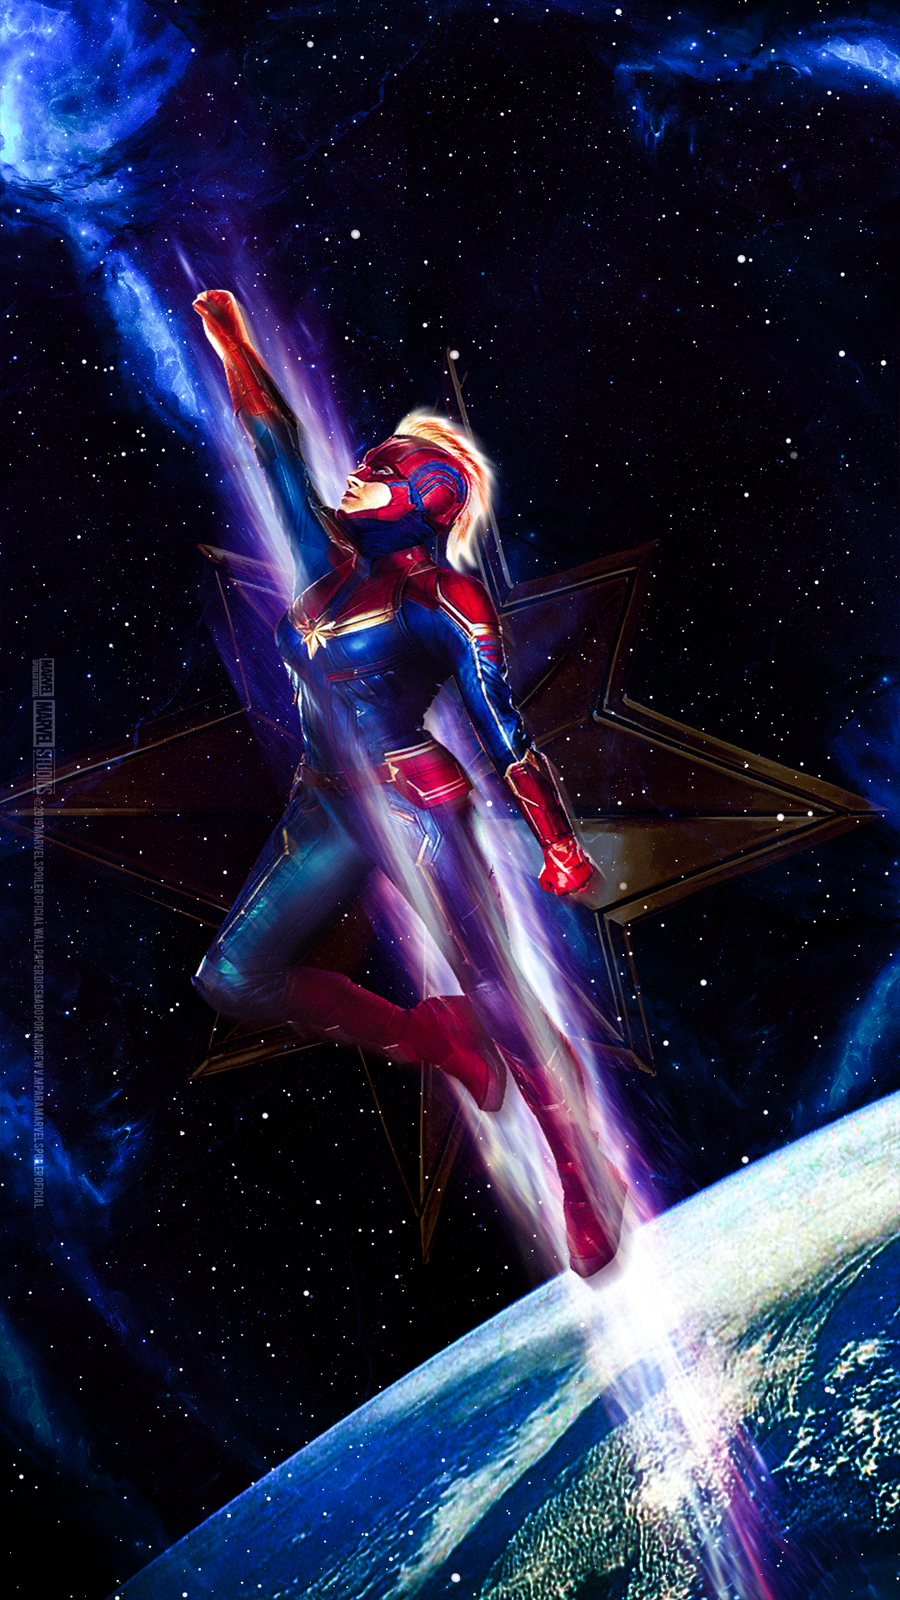 Marvel Spoiler Oficial Captain Marvel Nuevo Wallpaper Hd 2019